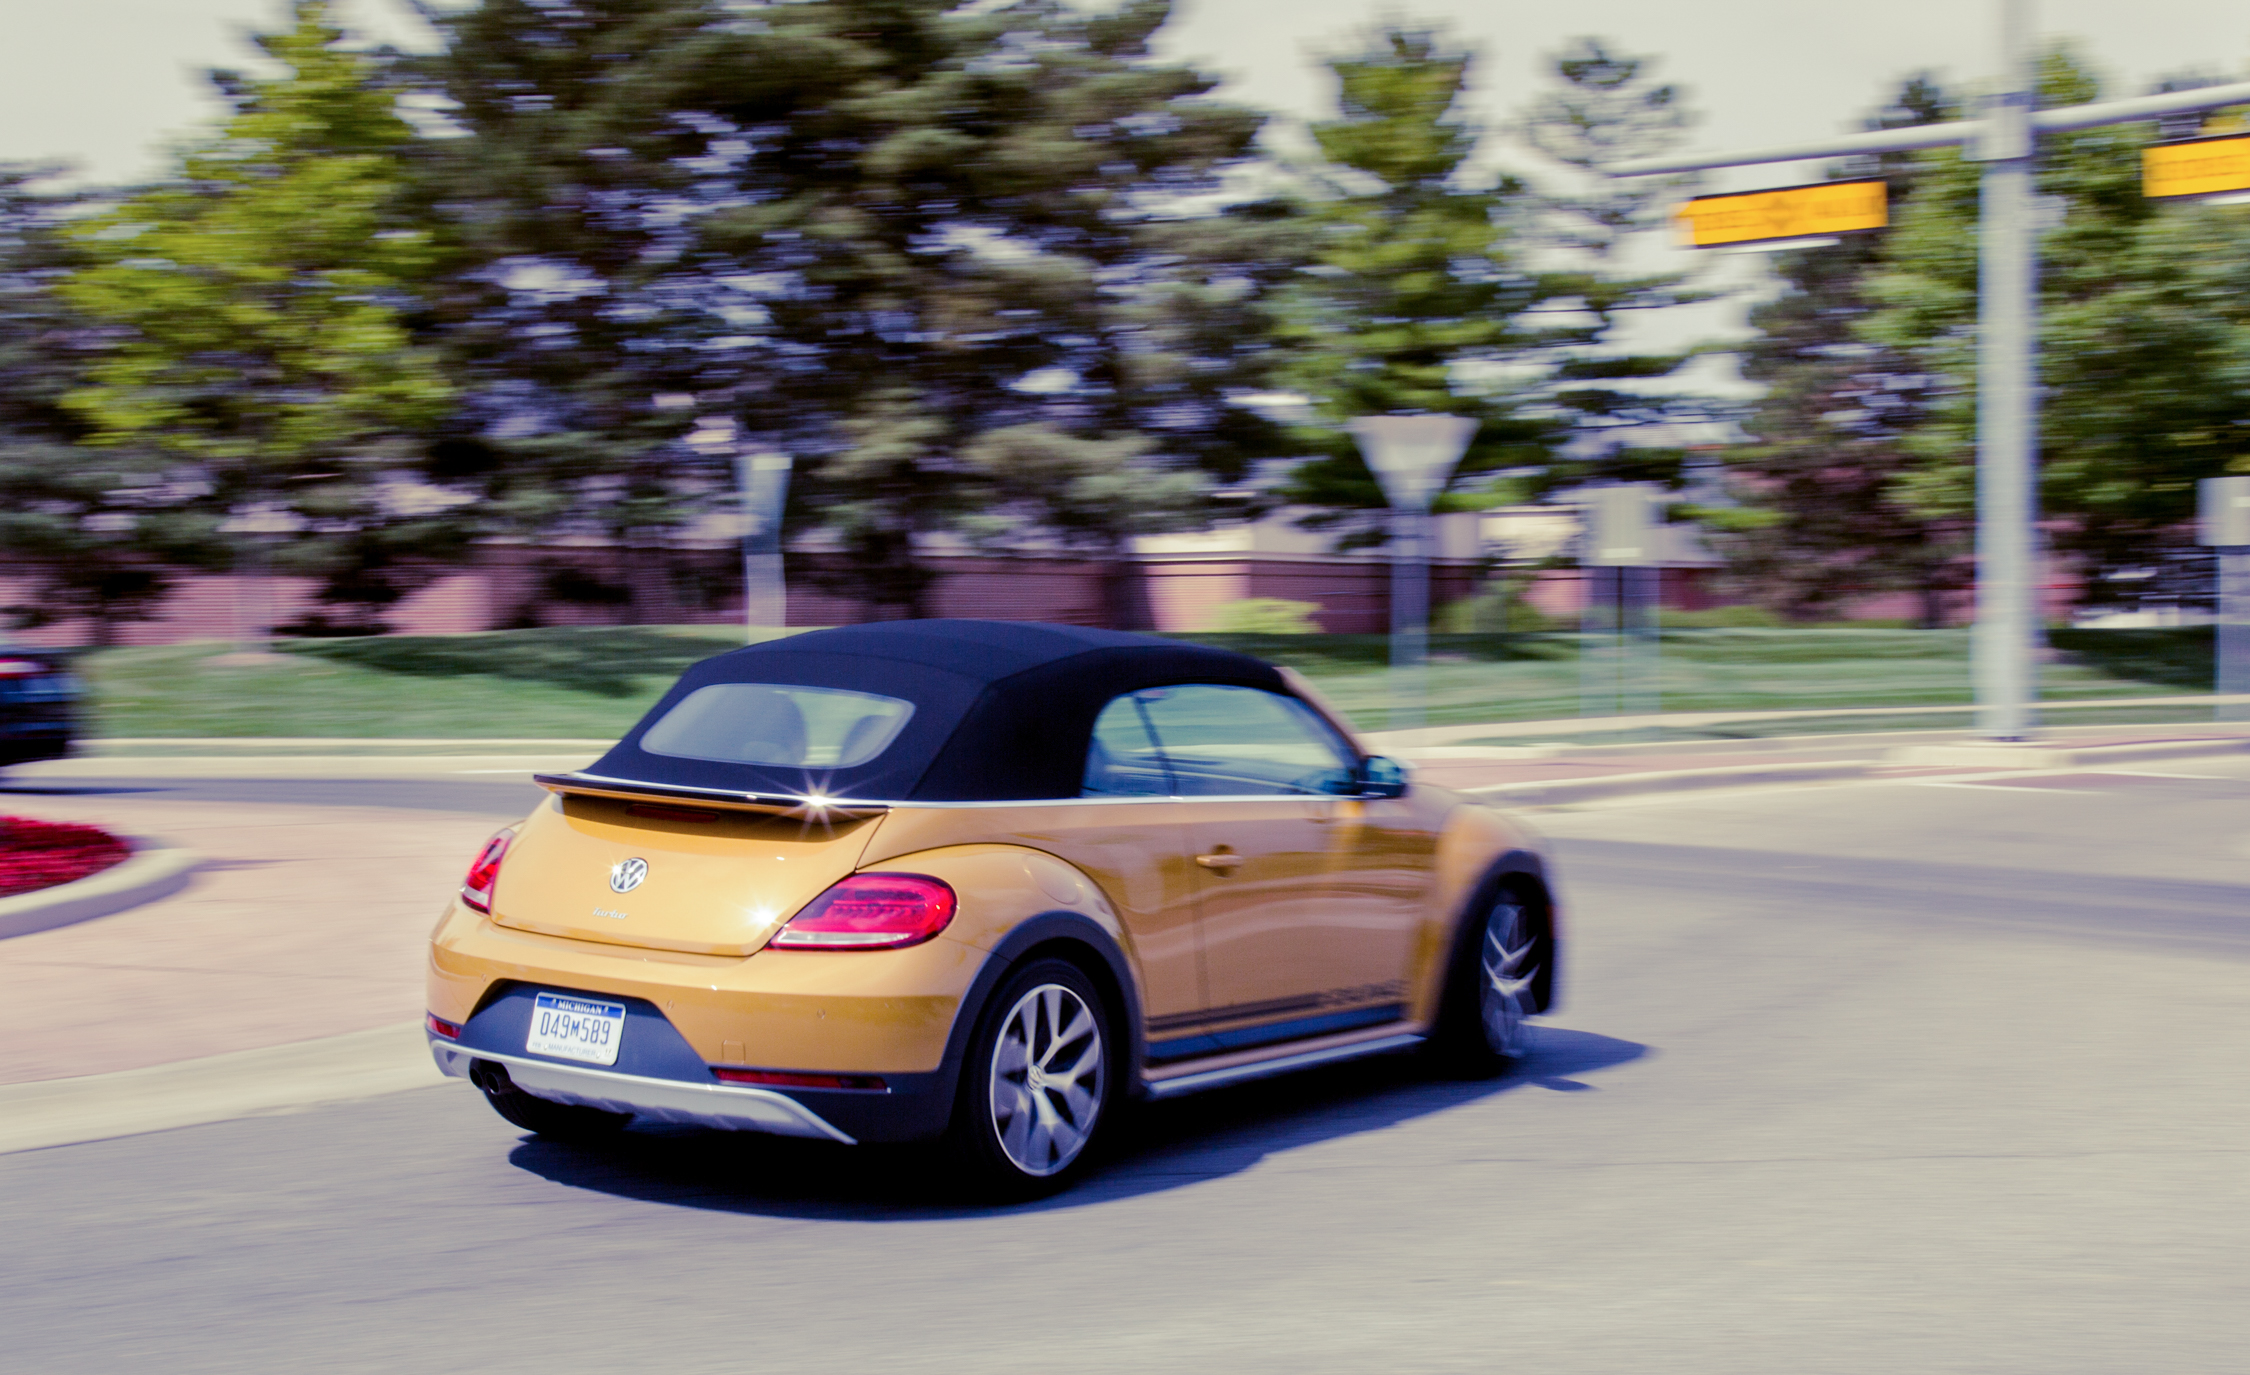 2017 Volkswagen Beetle Dune Convertible Test Drive Rear View (Photo 15 of 19)